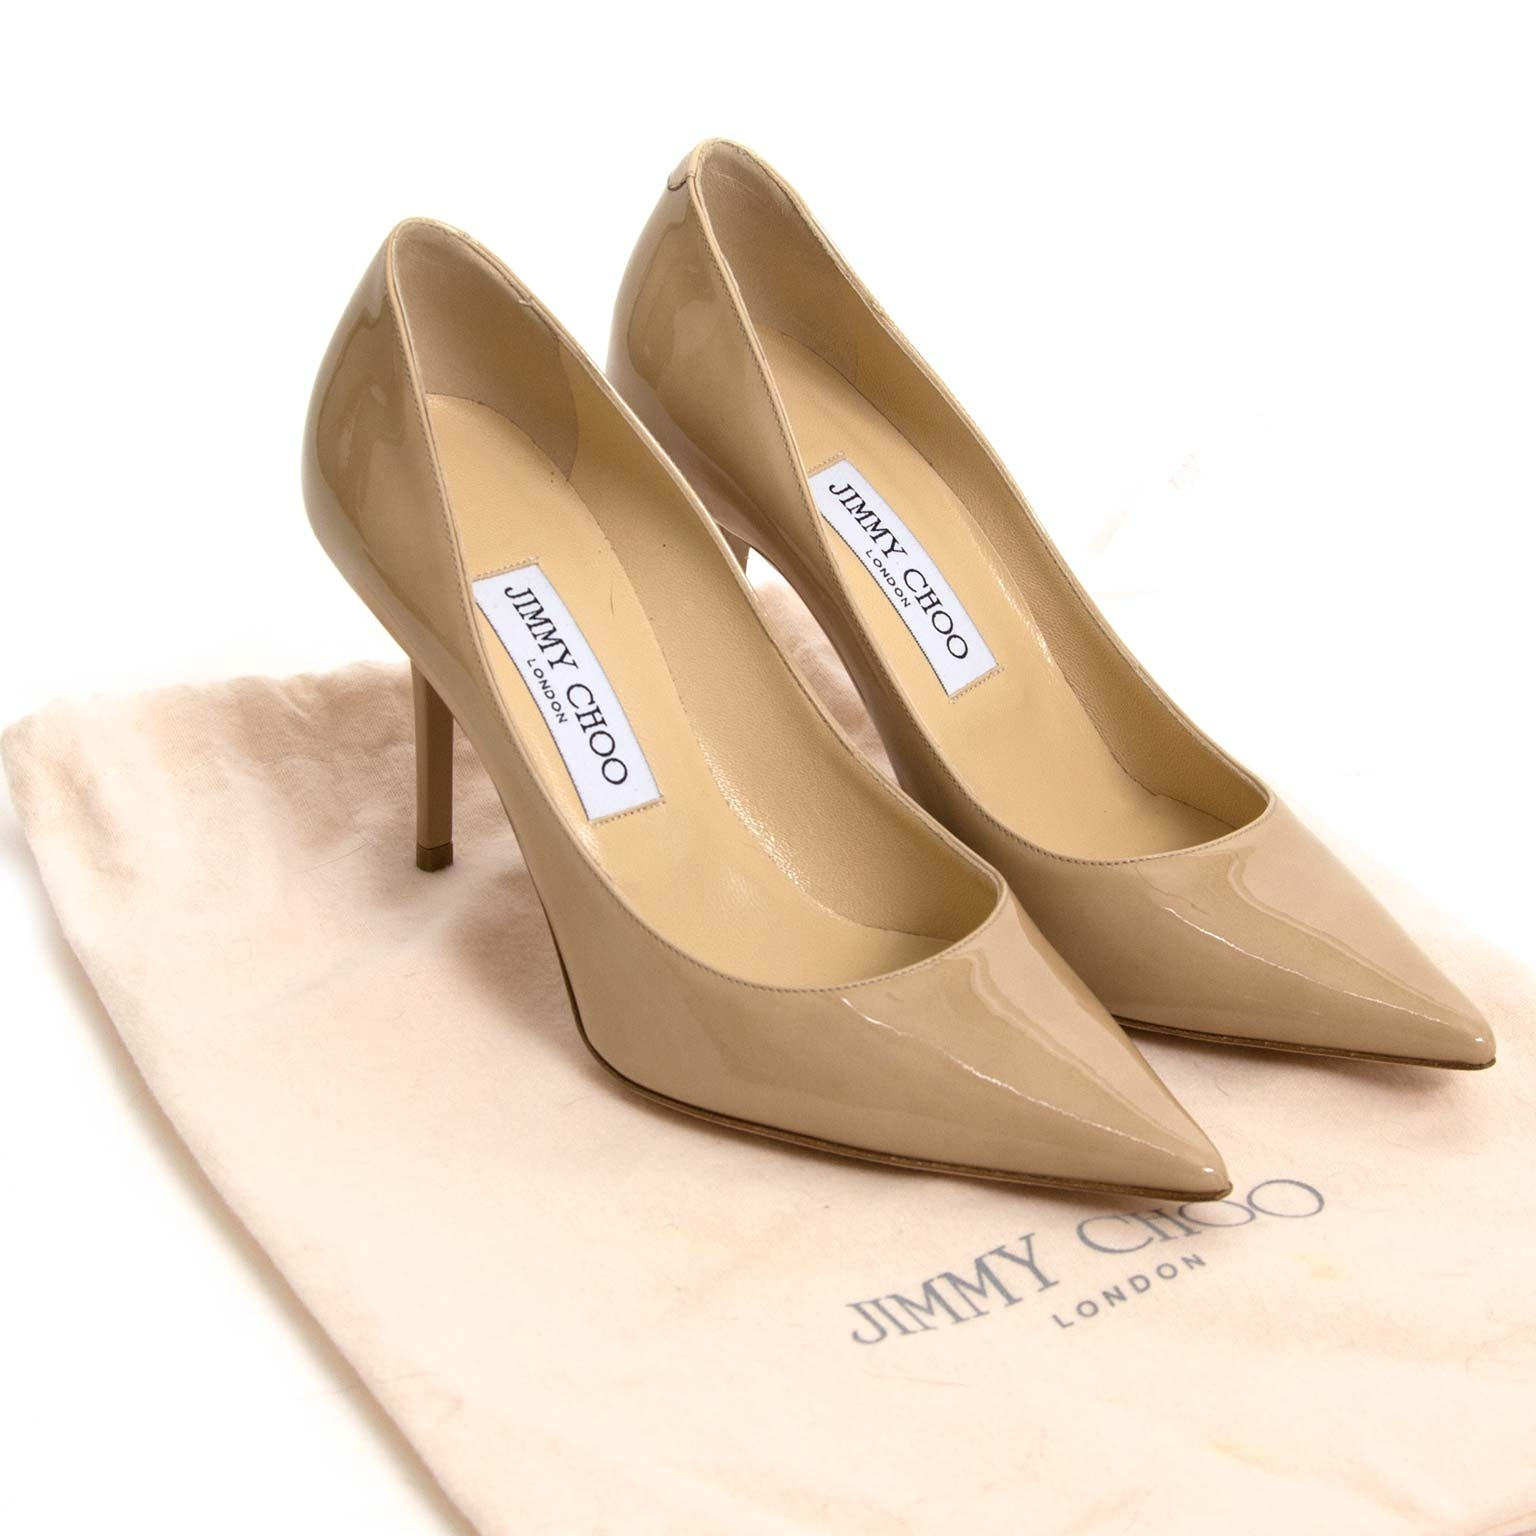 jimmy choo nude patent pumps now for sale at labellov vintage fashion webshop belgium